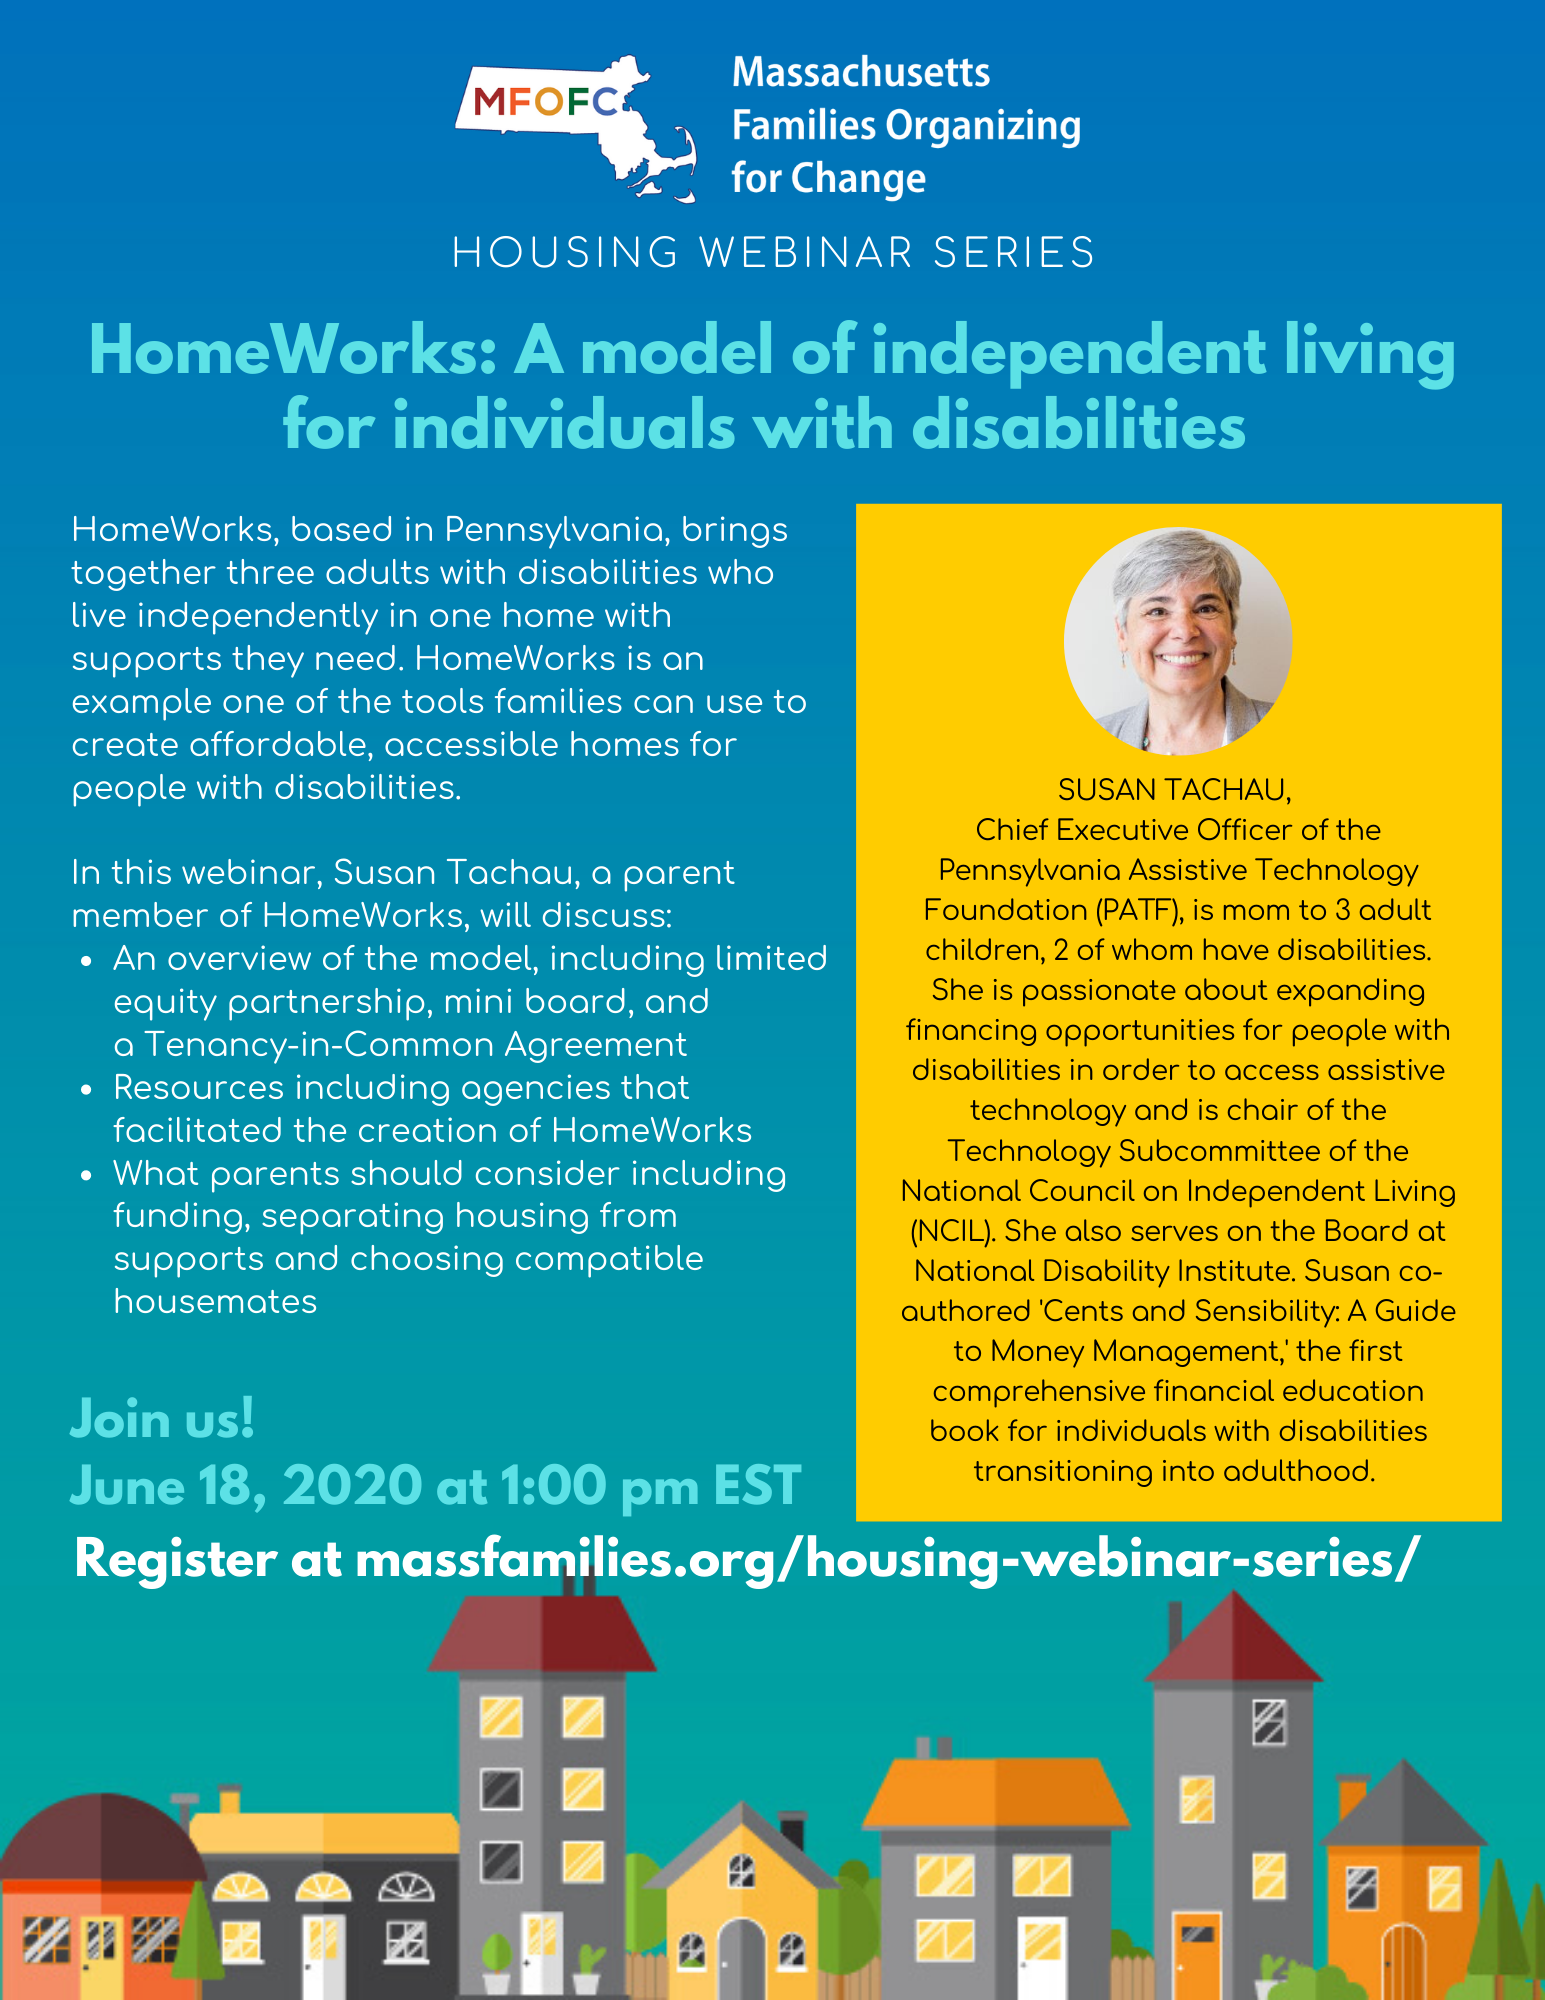 MFOFC Housing Webinar June 2020 Susan Tachau